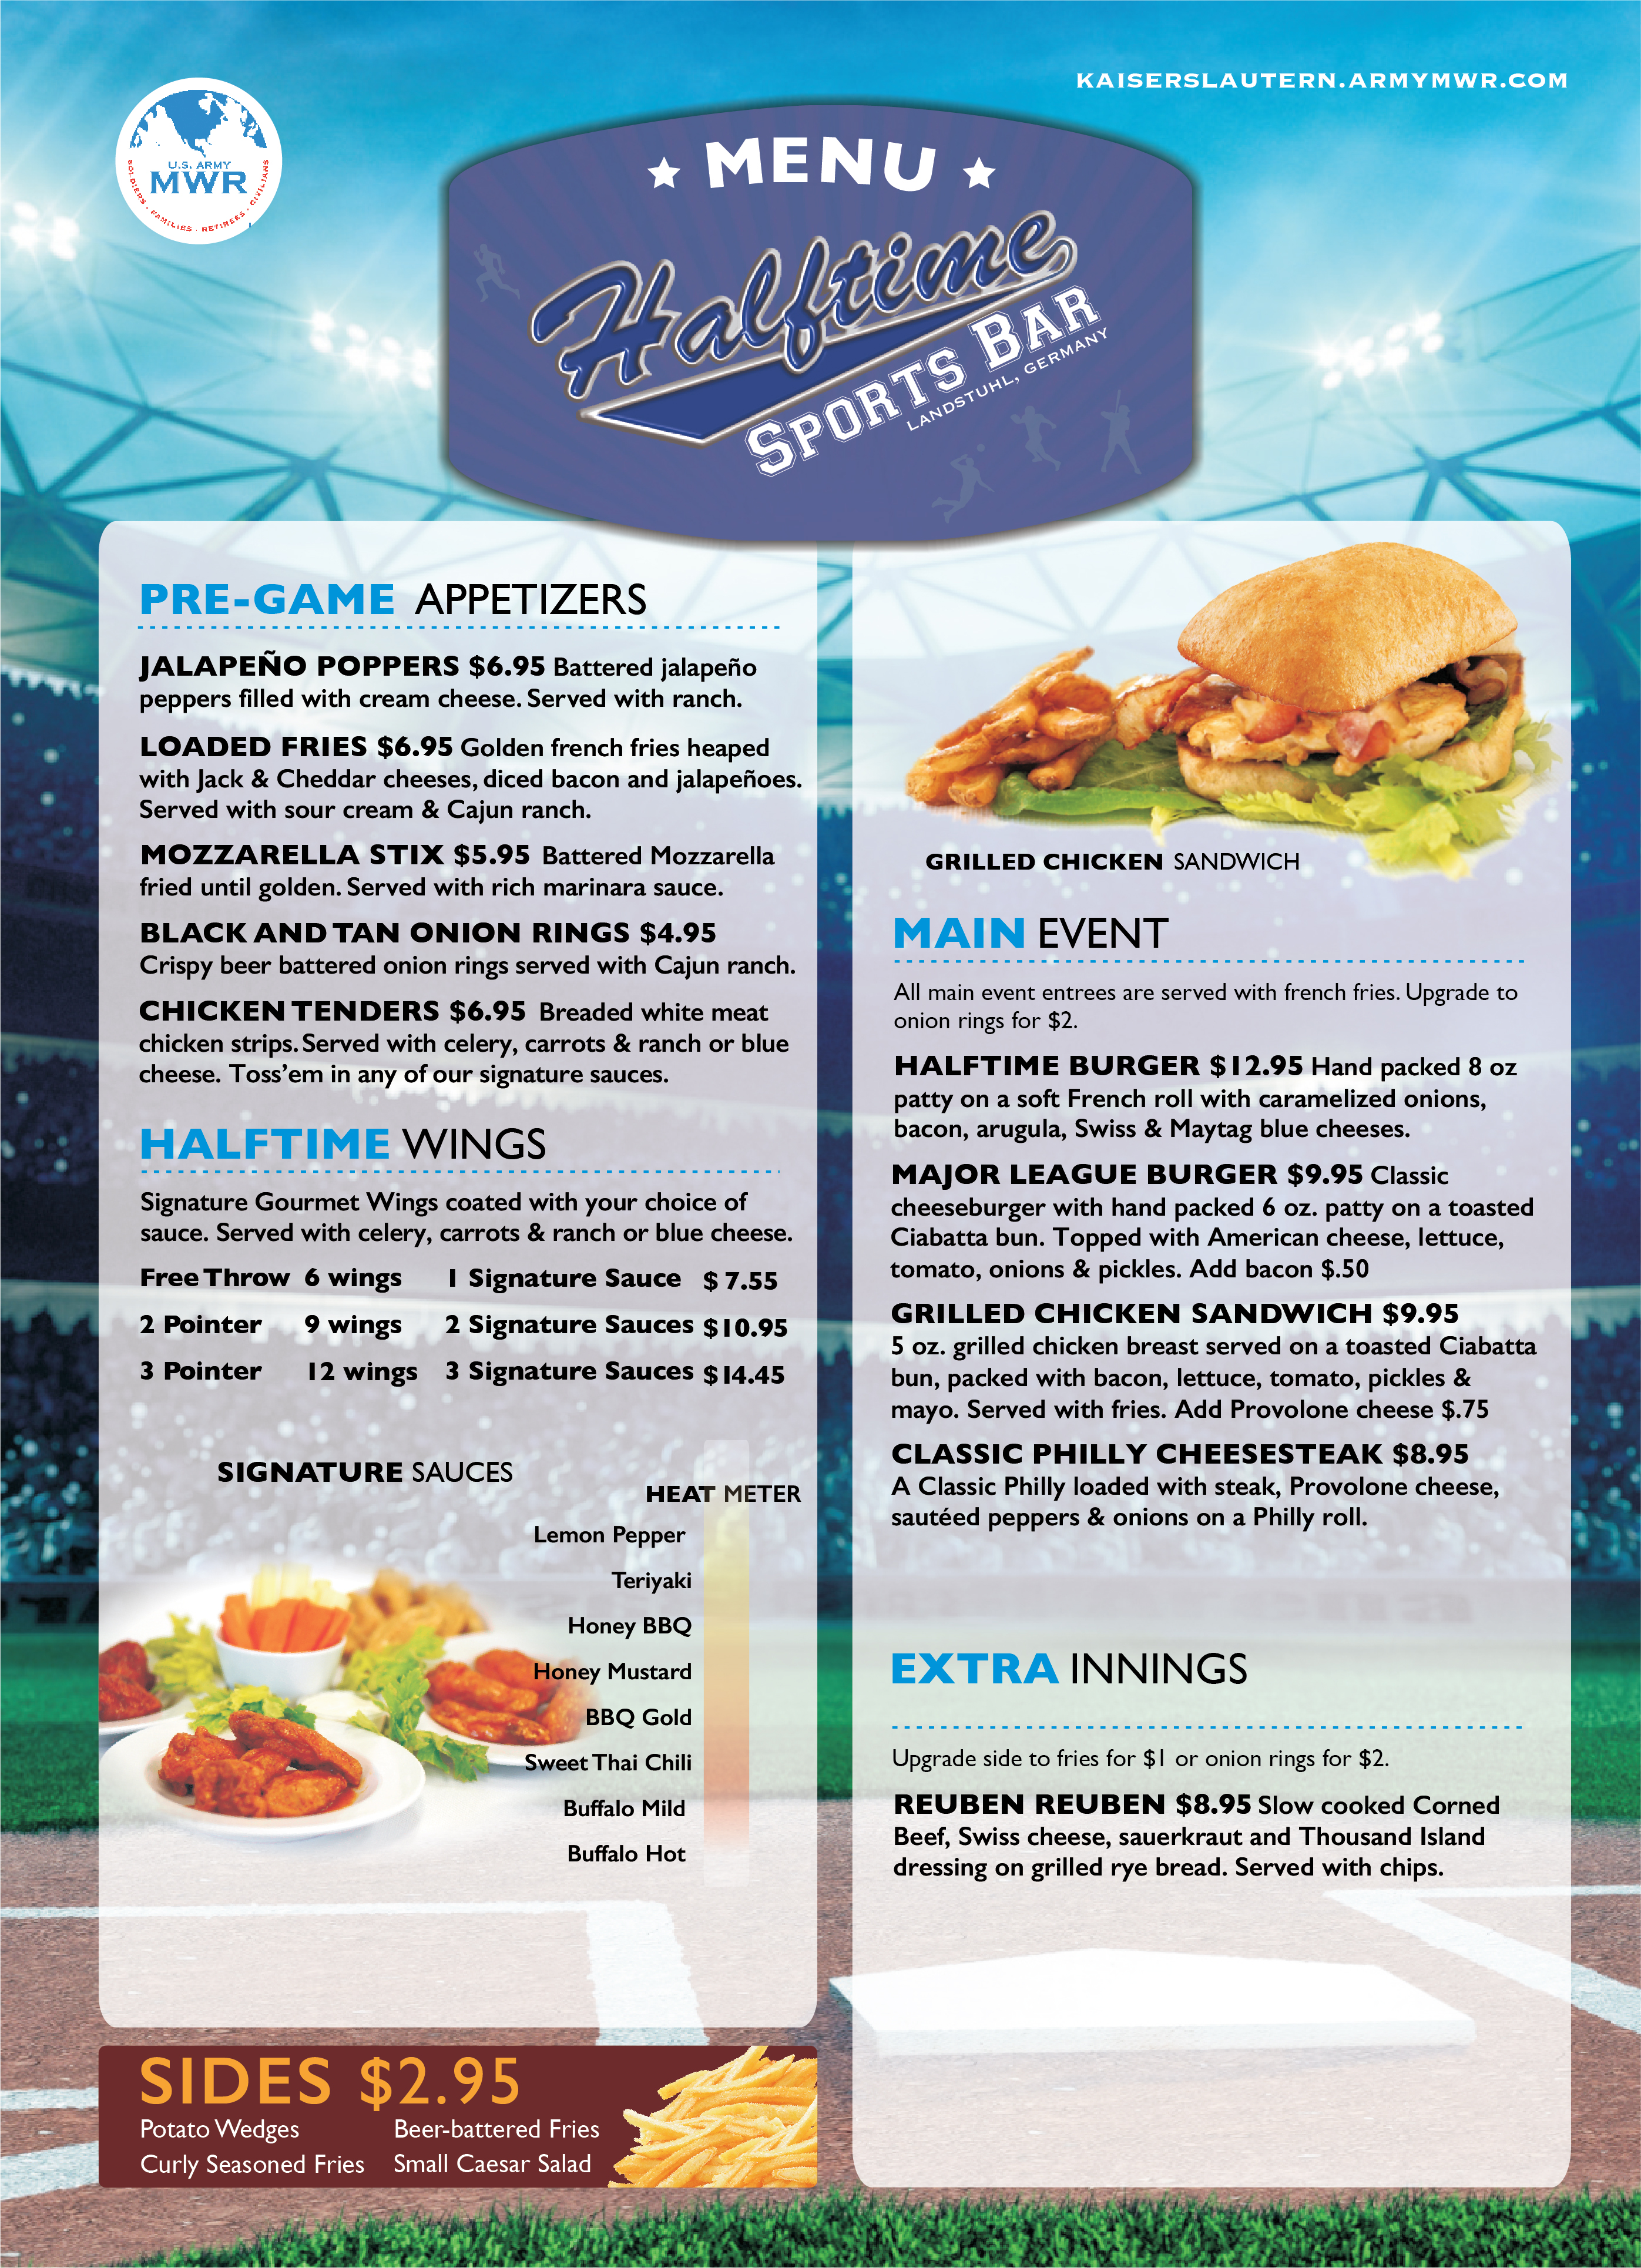 KL Halftime Sprots Bar Menu Print 230 by 320 mm May2020PAGE 1-01.jpg